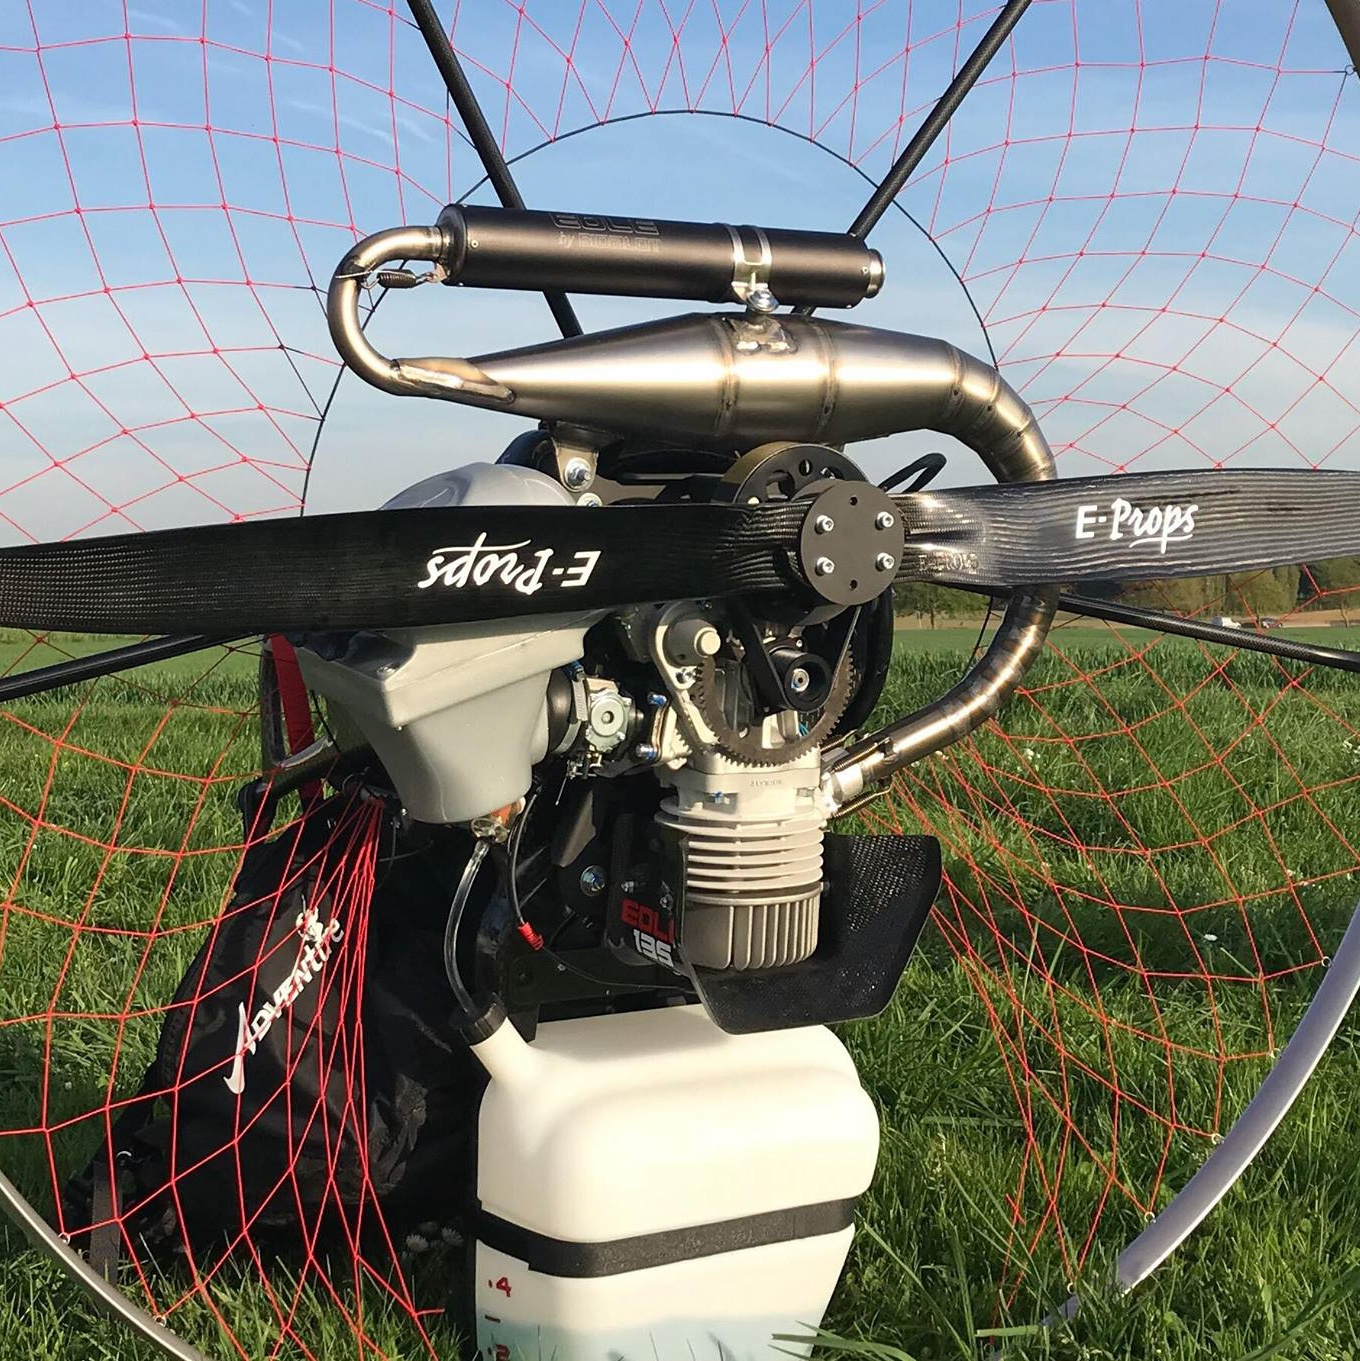 eprops carbon parajet propeller paramotor paratrike powered paragliding ppg